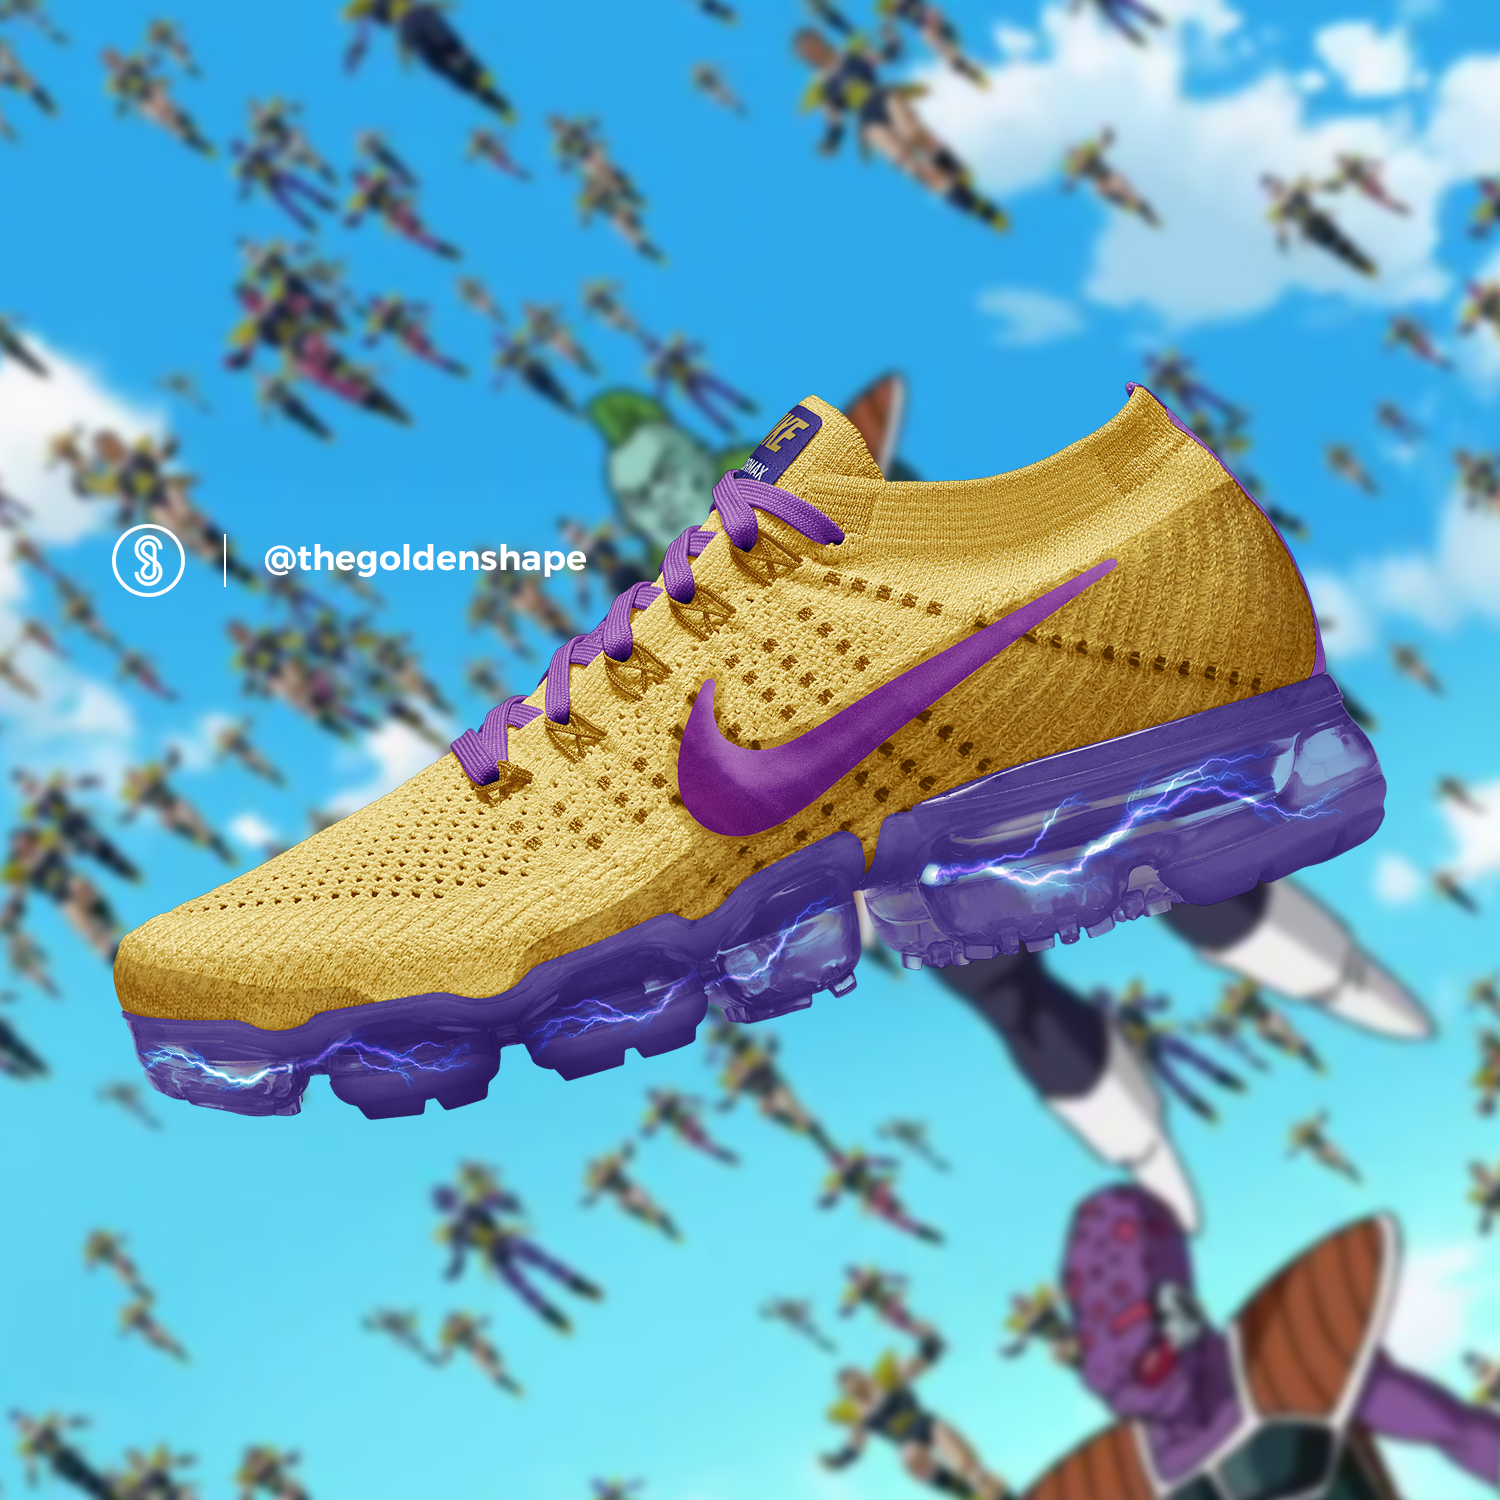 517686aa4e56e Dragon Ball Super x Nike Air VaporMax Golden Freezer